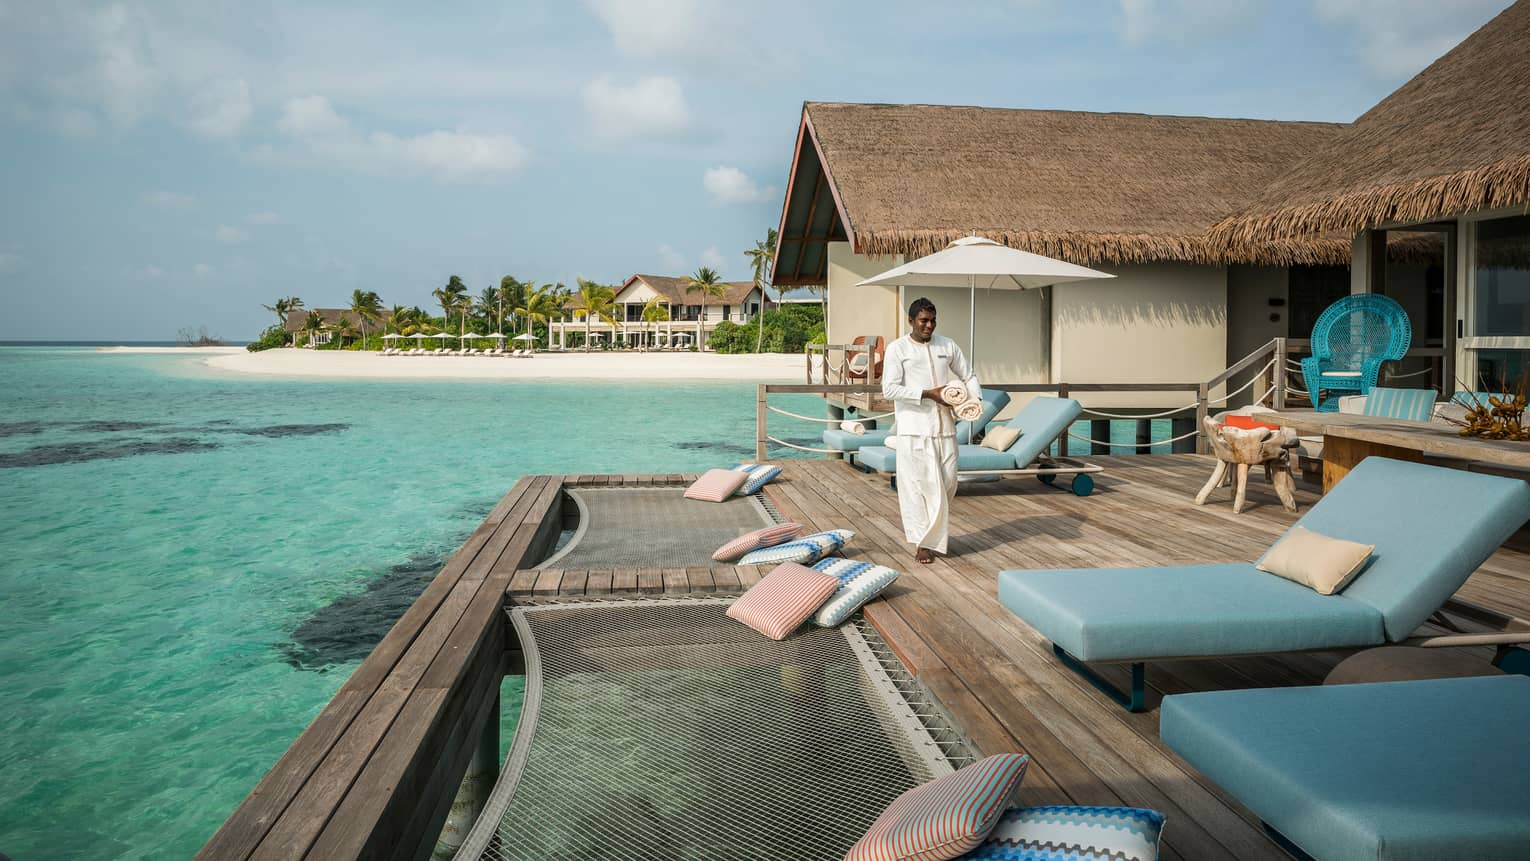 Hotel staff carries towels across Water Villa patio to blue lounge chairs, hammocks over lagoon